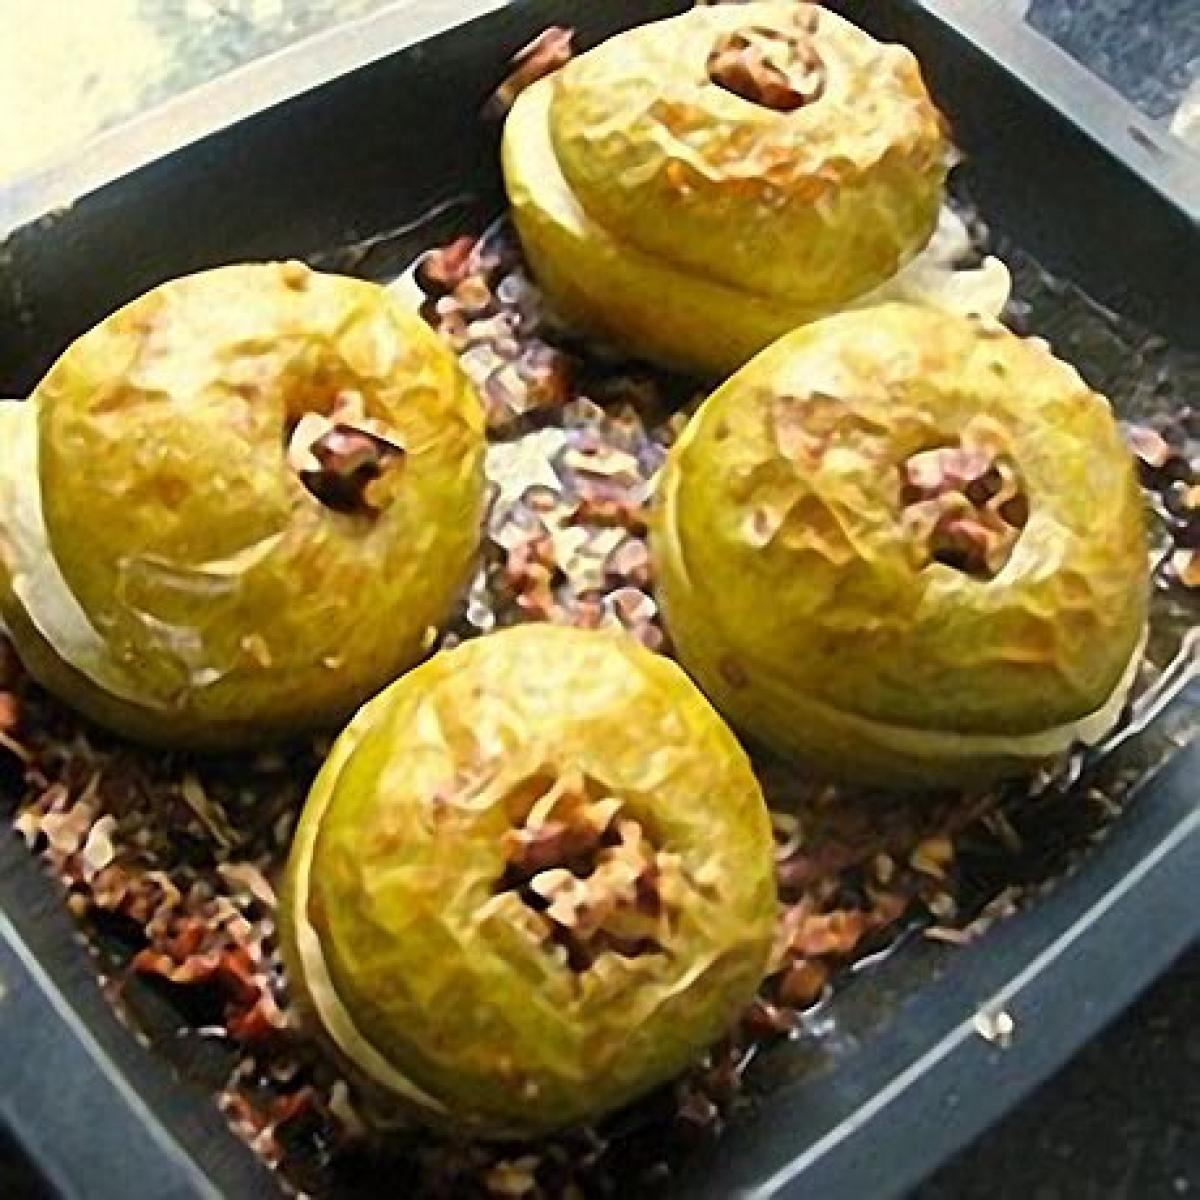 A picture of Delia's Baked Apples with Pecans and Maple Syrup recipe